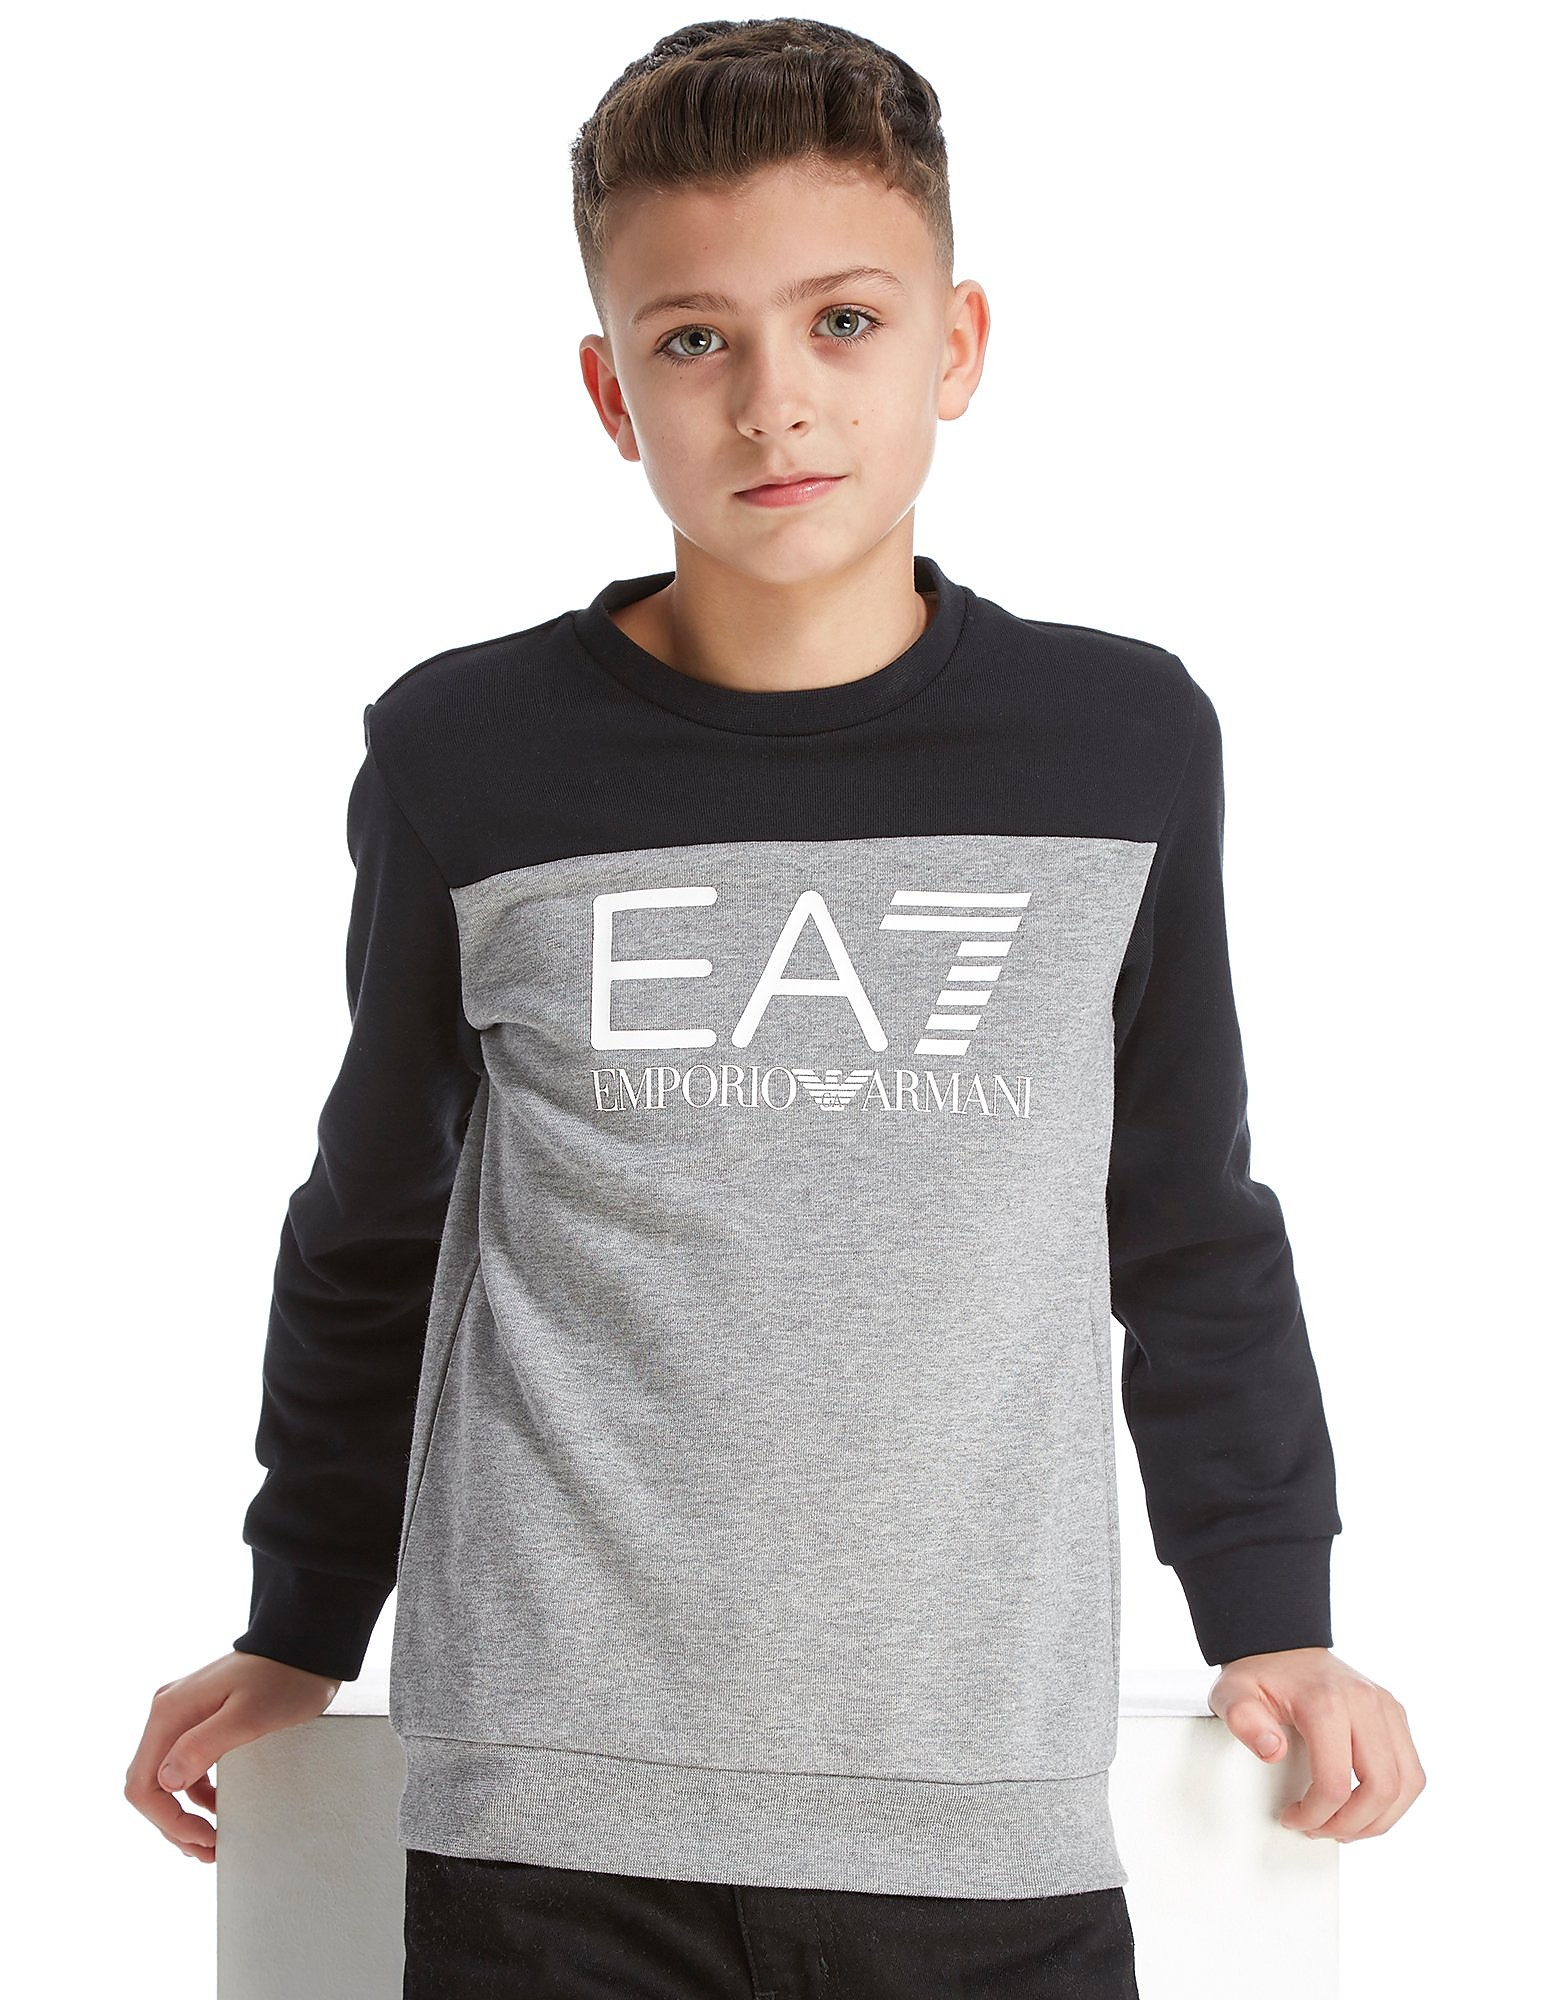 Emporio Armani EA7 Train Colourblock Crew Sweatshirt Junior